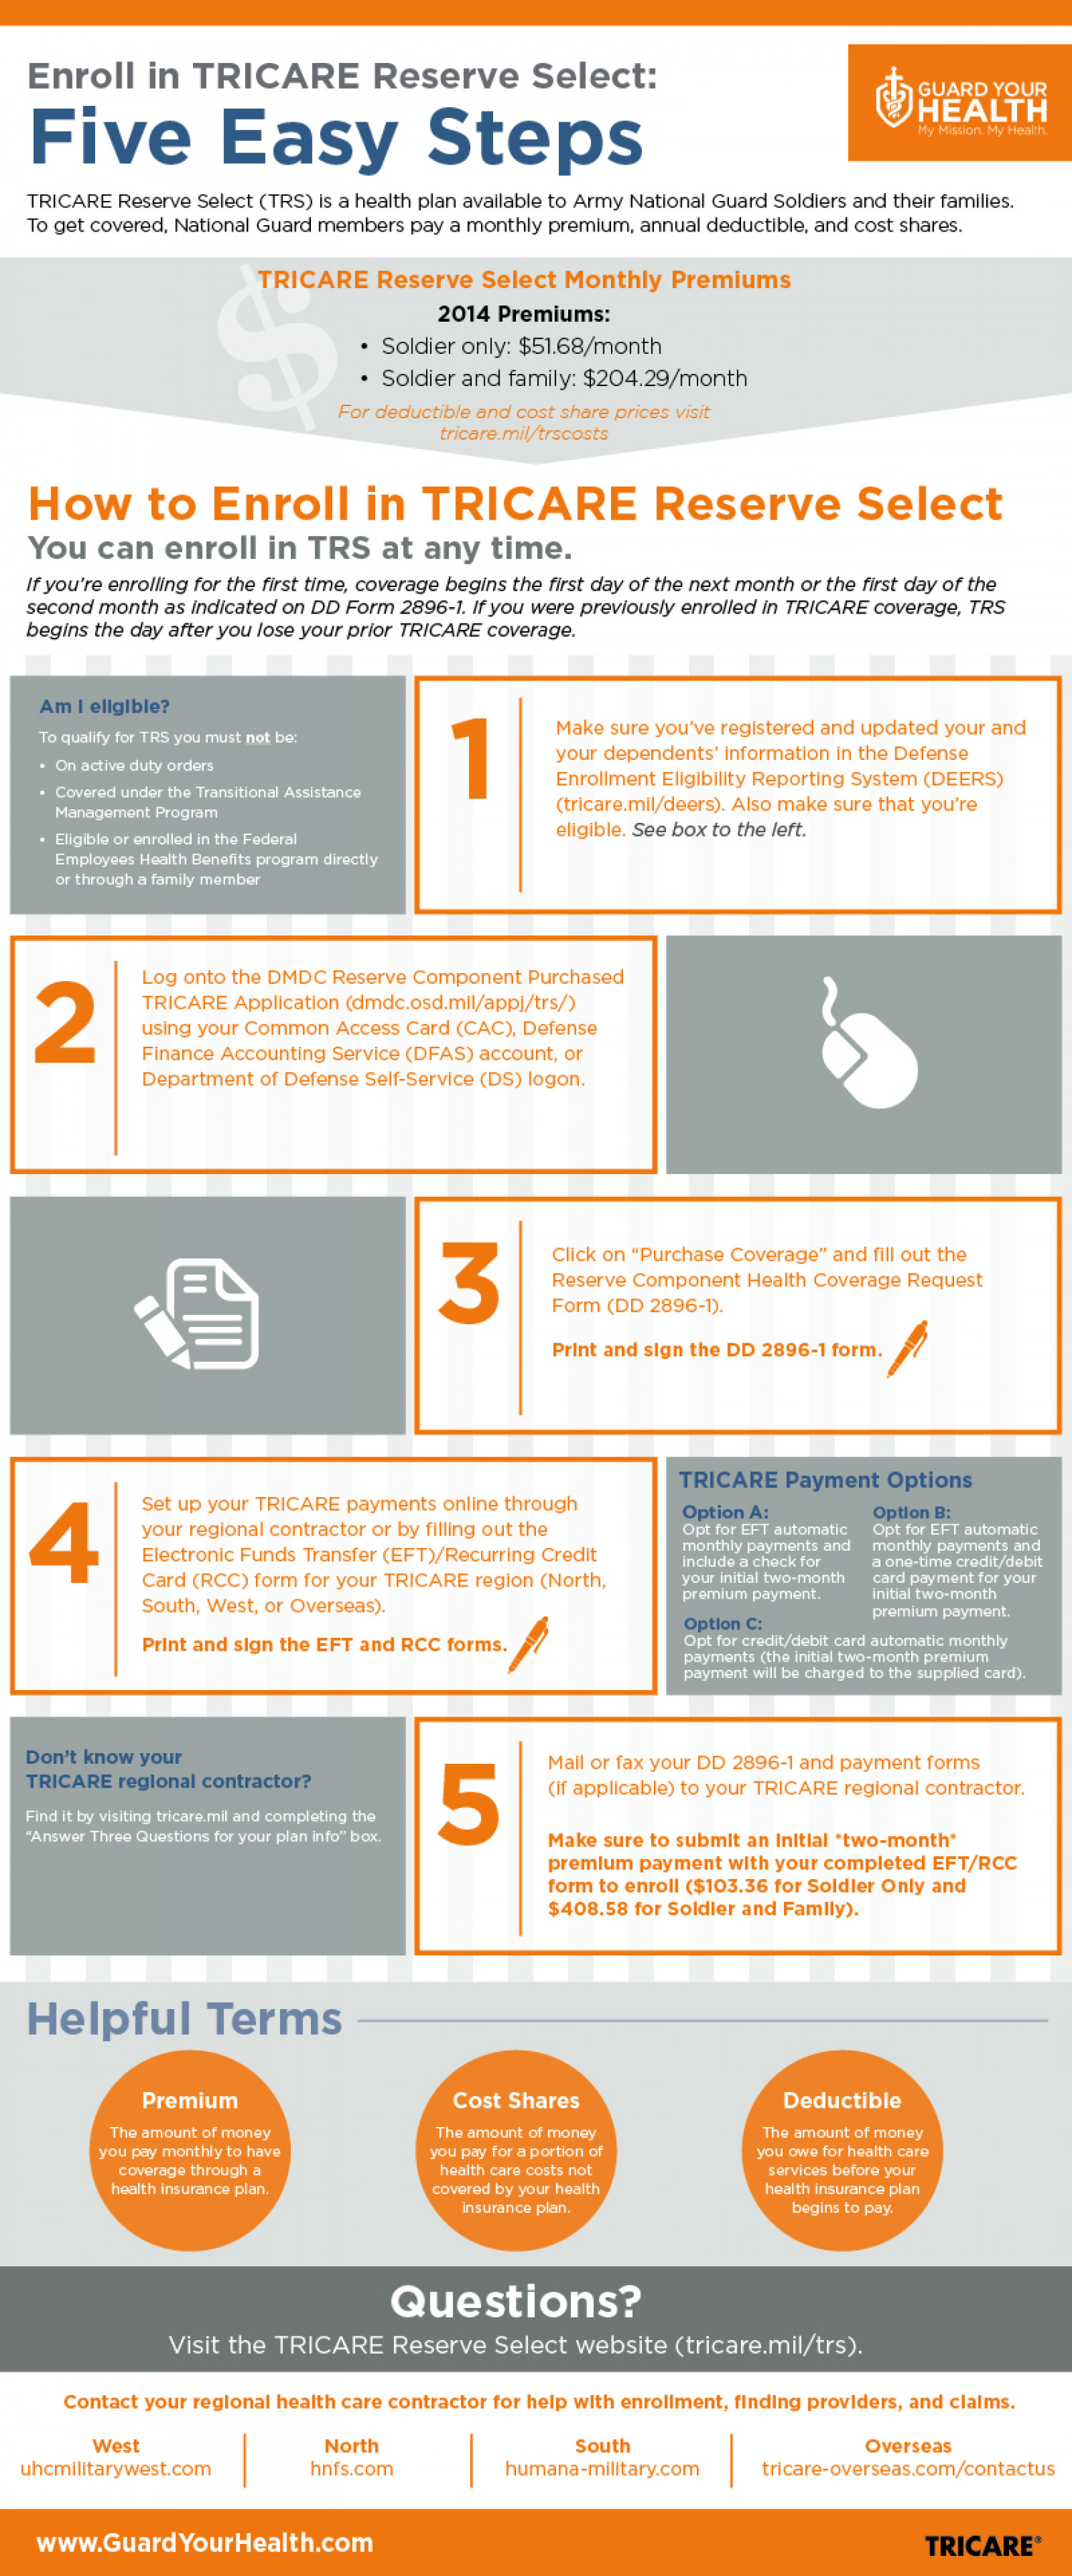 Enroll in TRICARE Reserve Select in Five Easy Steps | Visual.ly